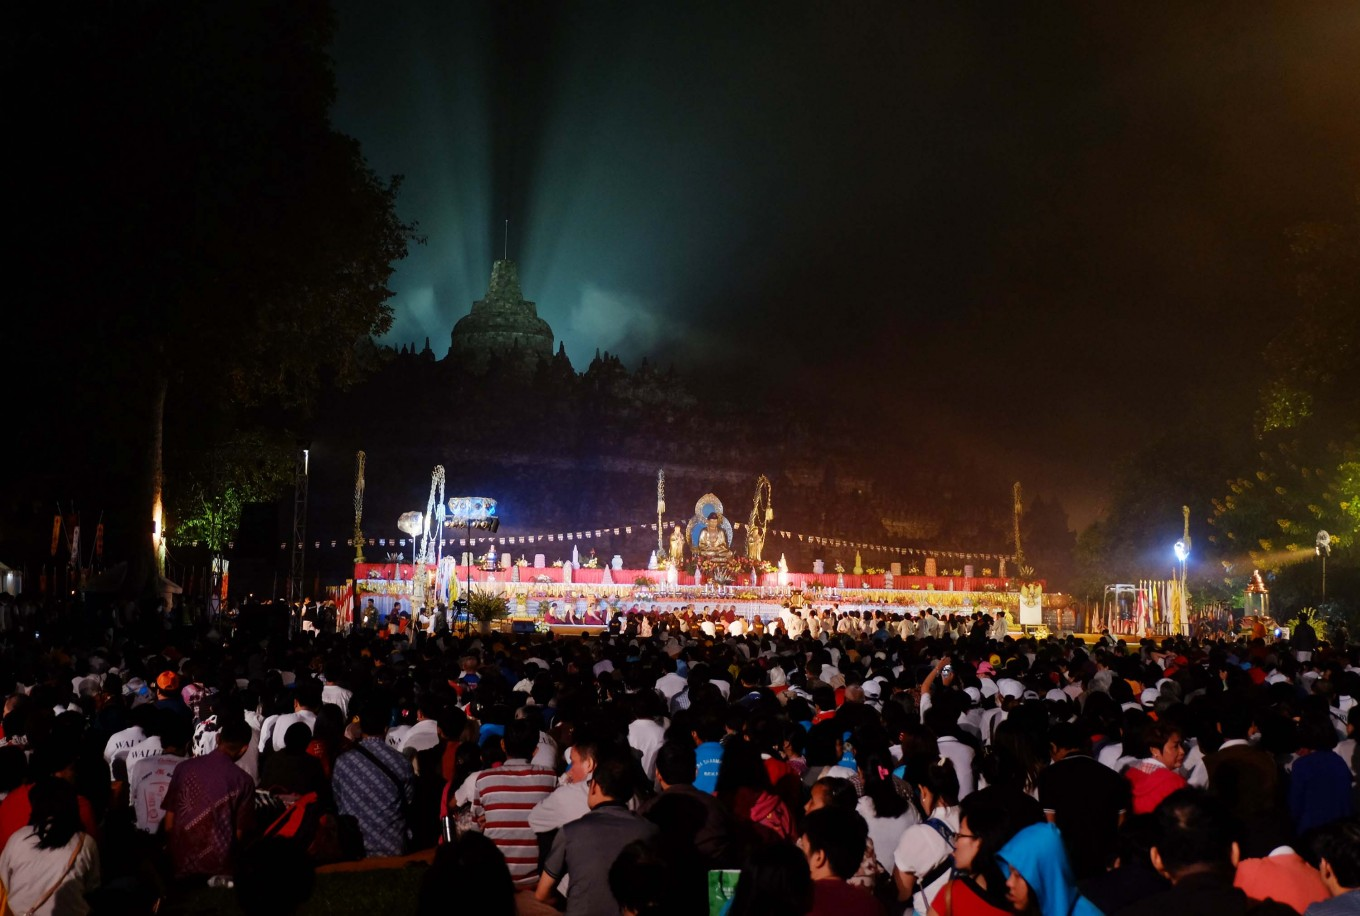 Worshipers await the countdown to Buddha's Day of Enlightenment at Borobudur Temple early on Sunday morning. JP/Tarko Sudiarno